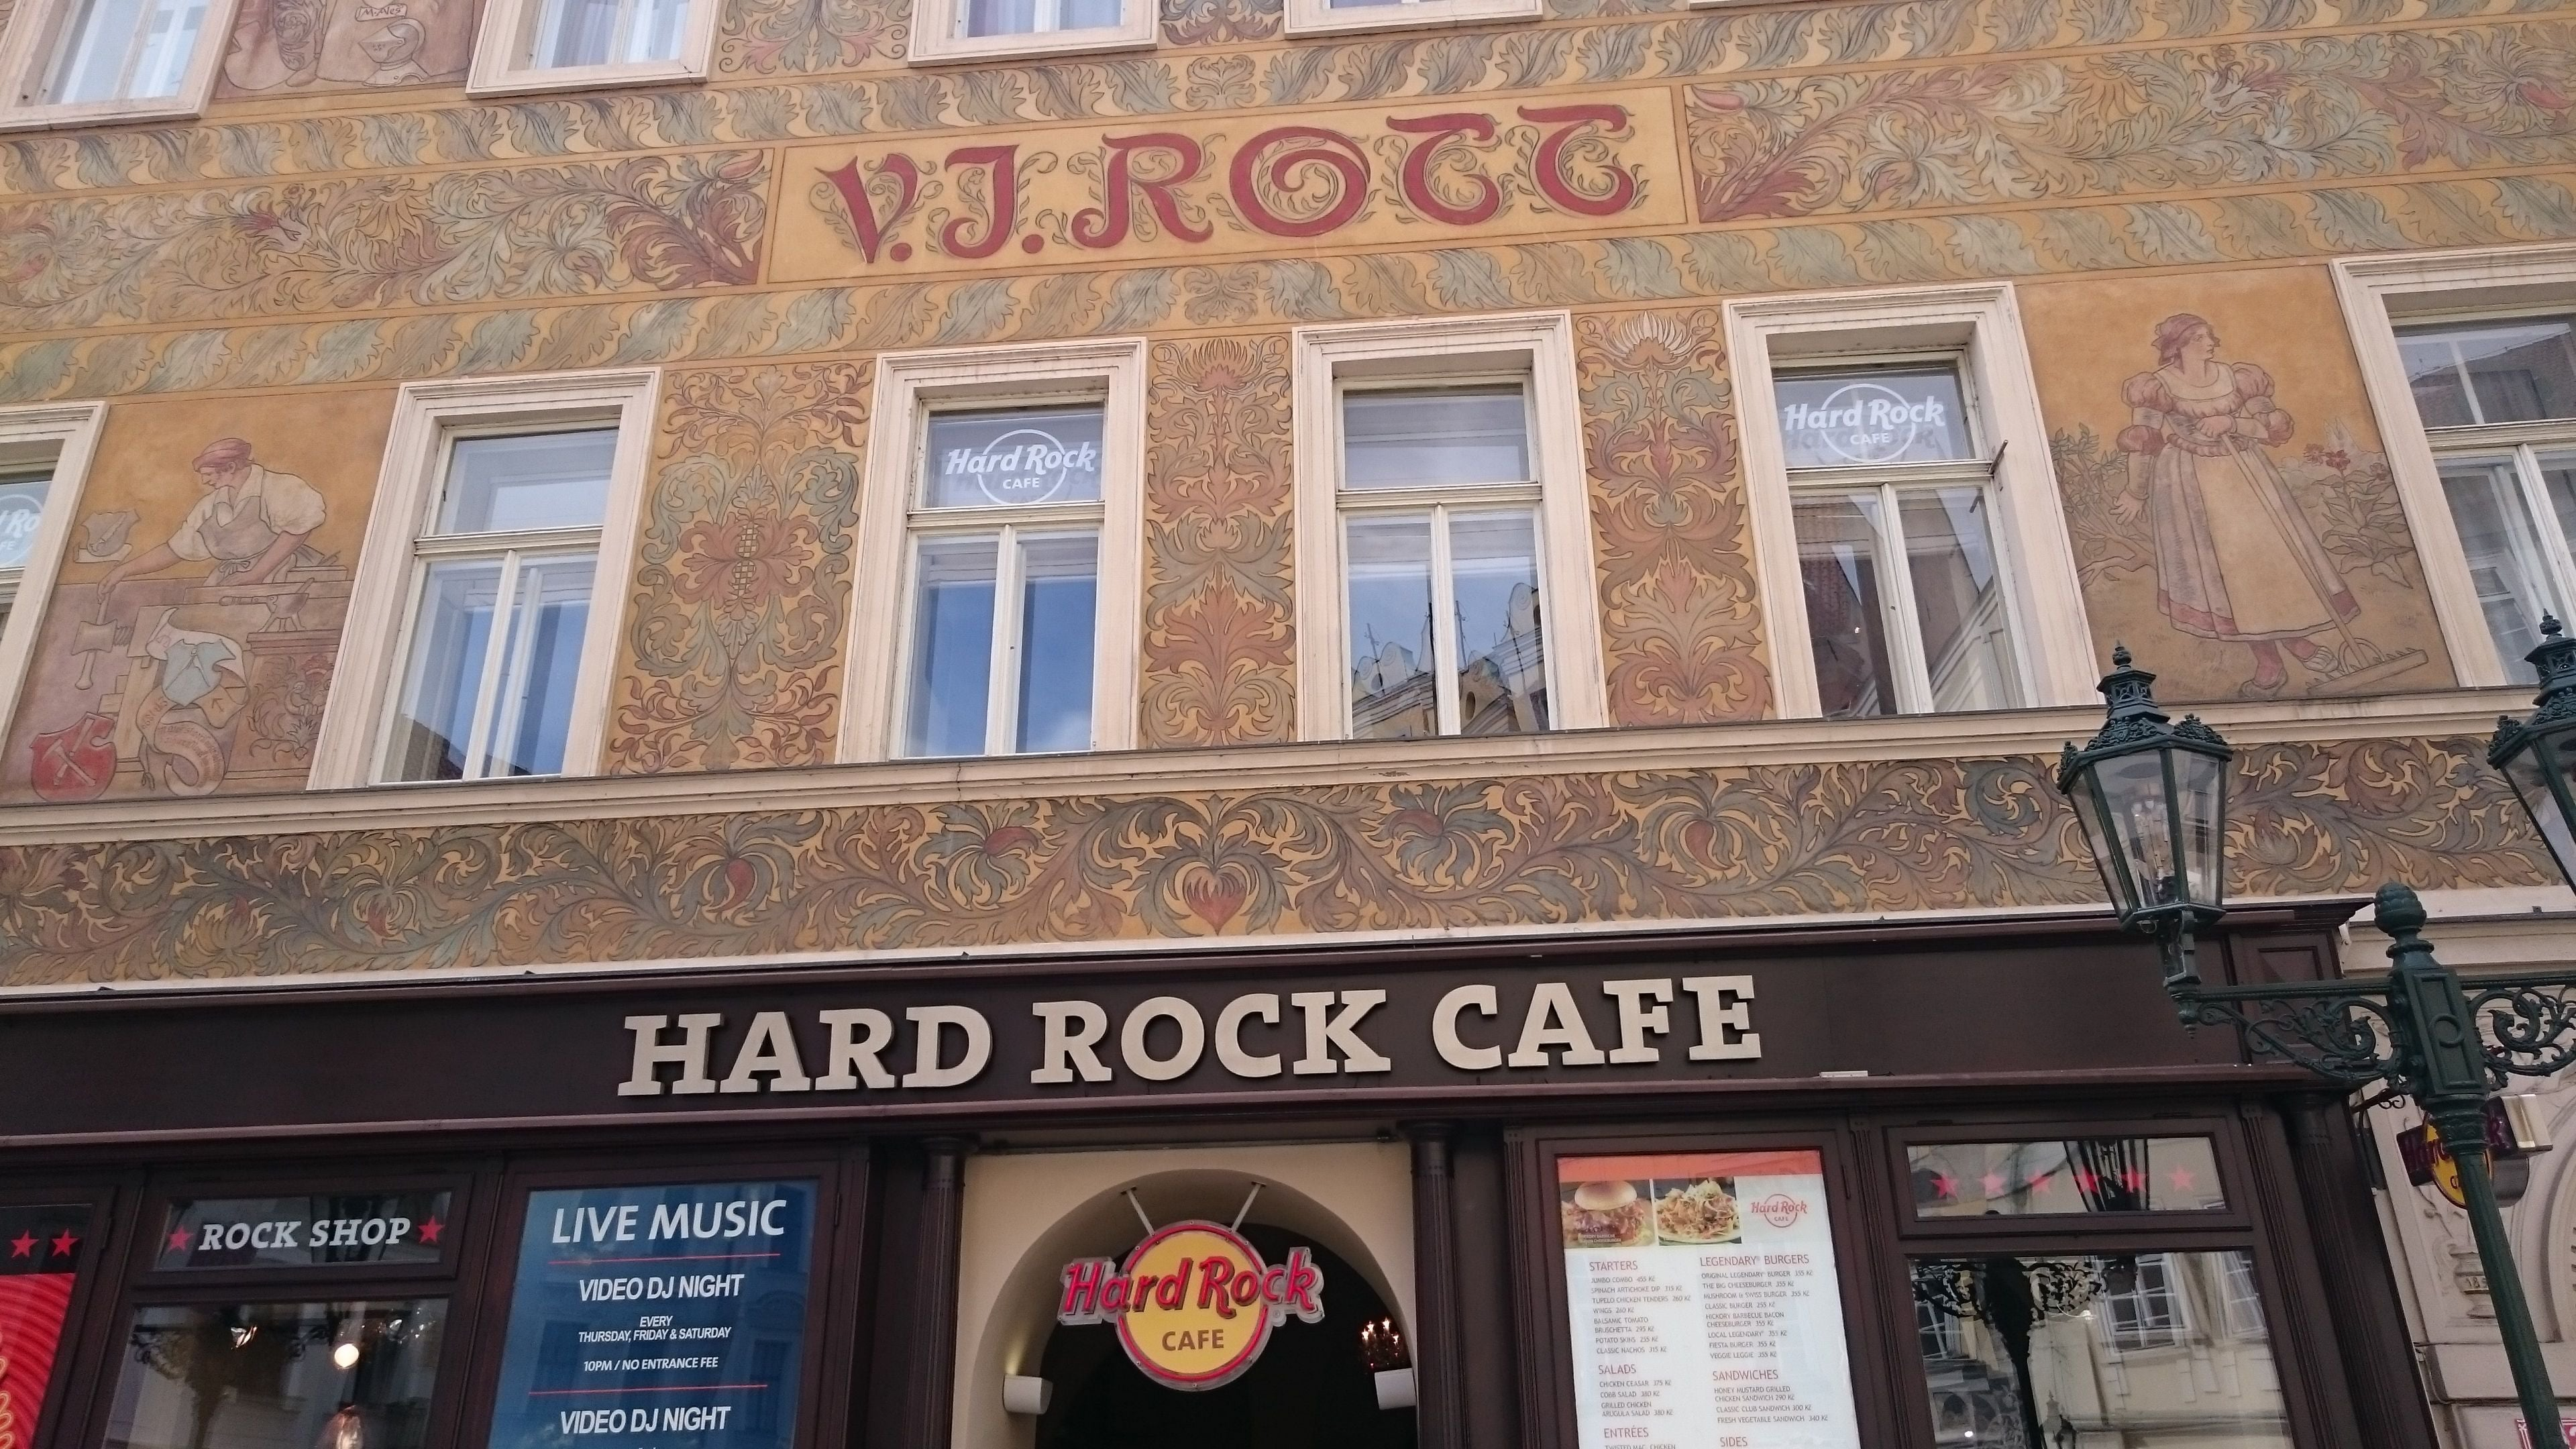 Ventana en Hard Rock Cafe Praga